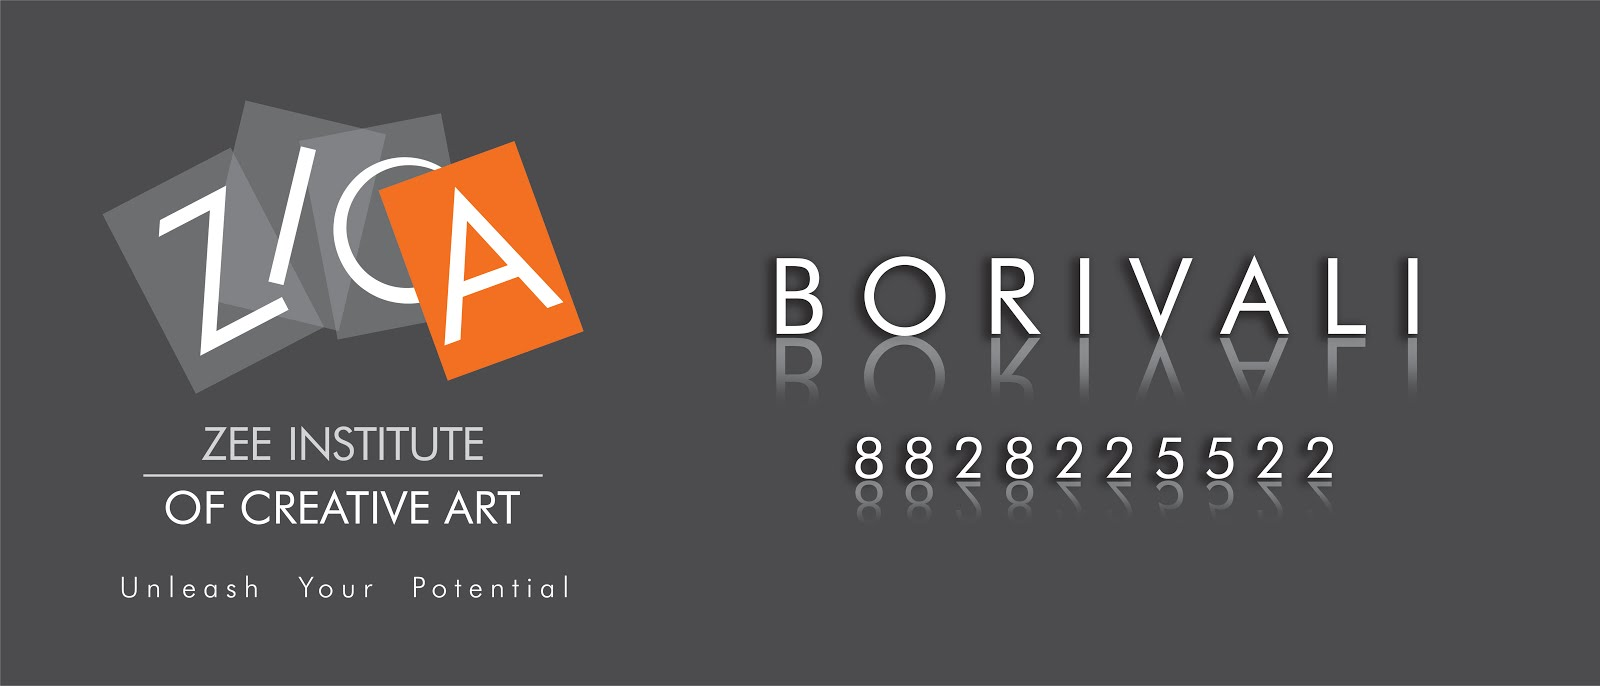 Zee Institute of Creative Art Borivali